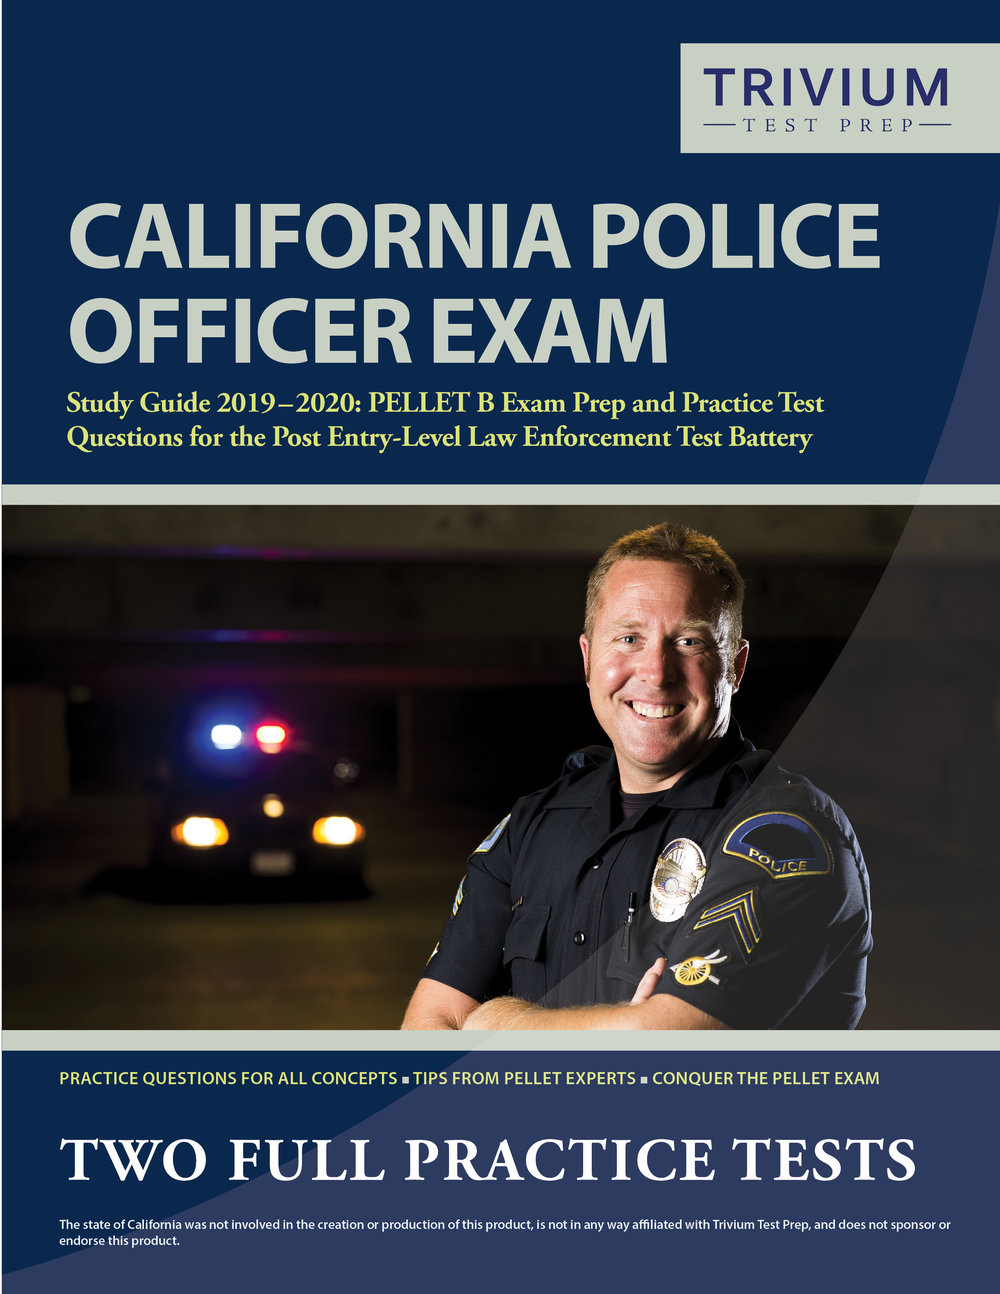 PELLET-B California Police Officer Exam Study Guide Prep and Practice Test Questions